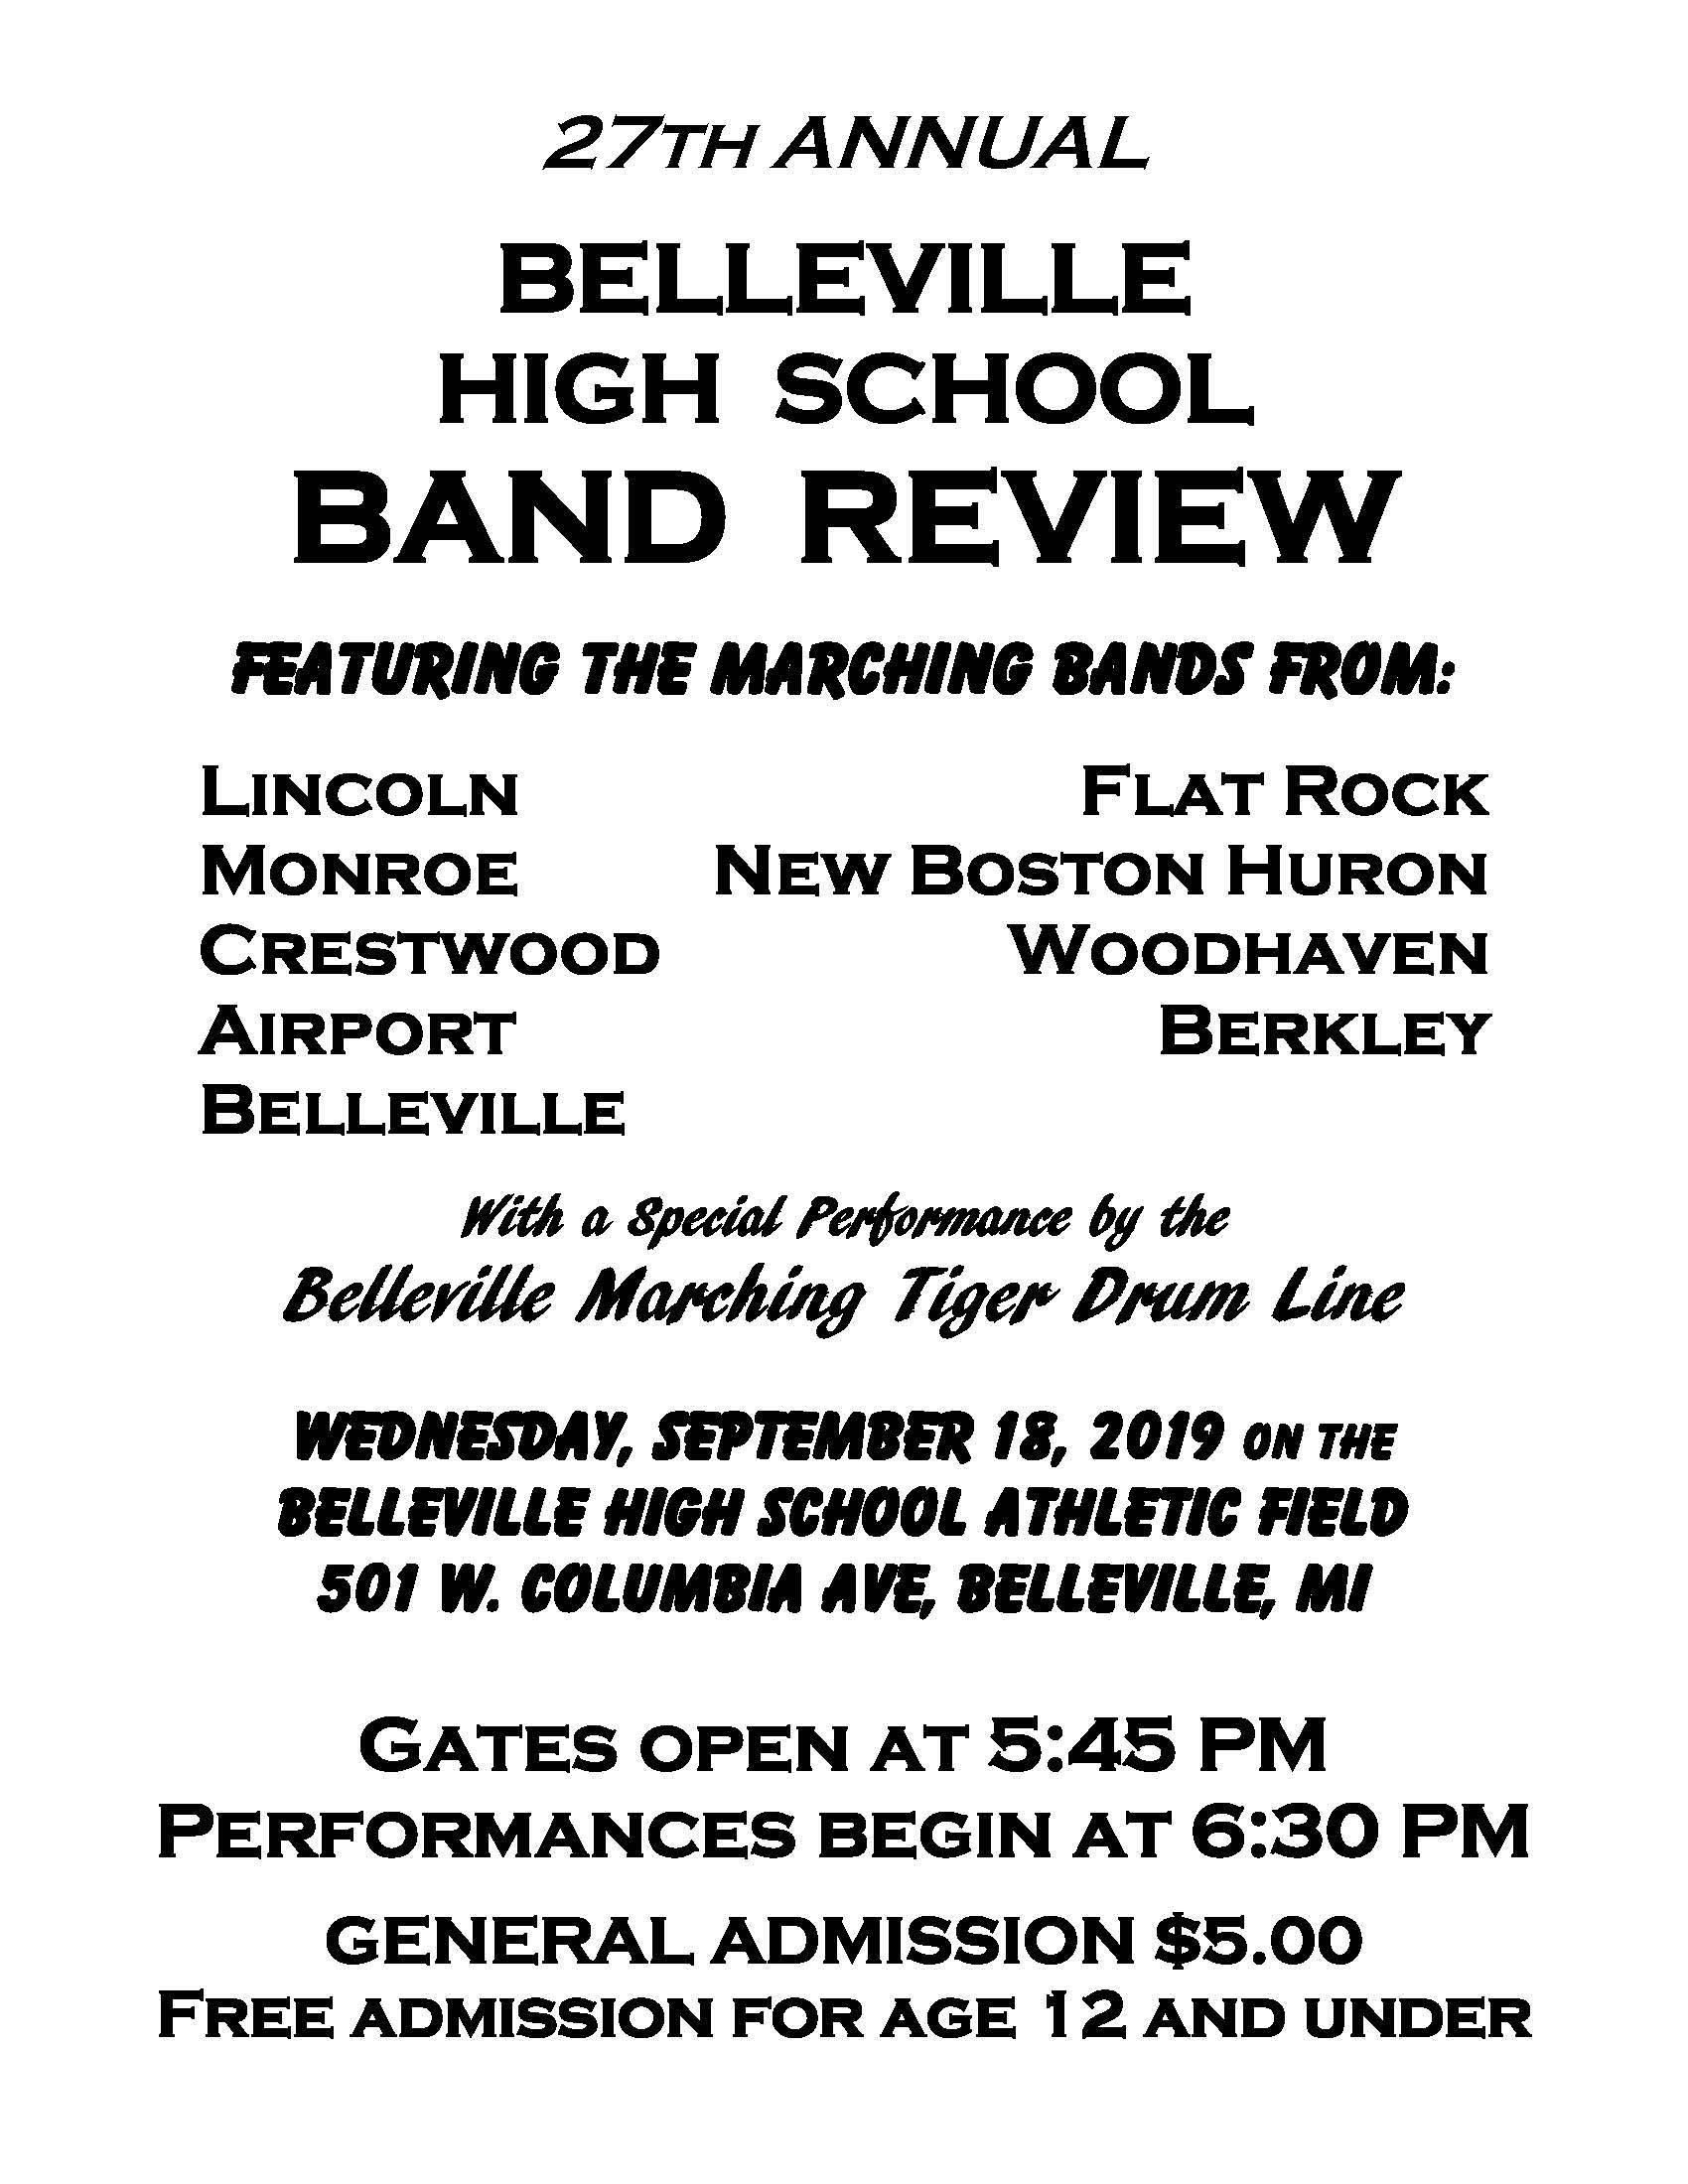 Marching Band to Perform in the Belleville Band Review